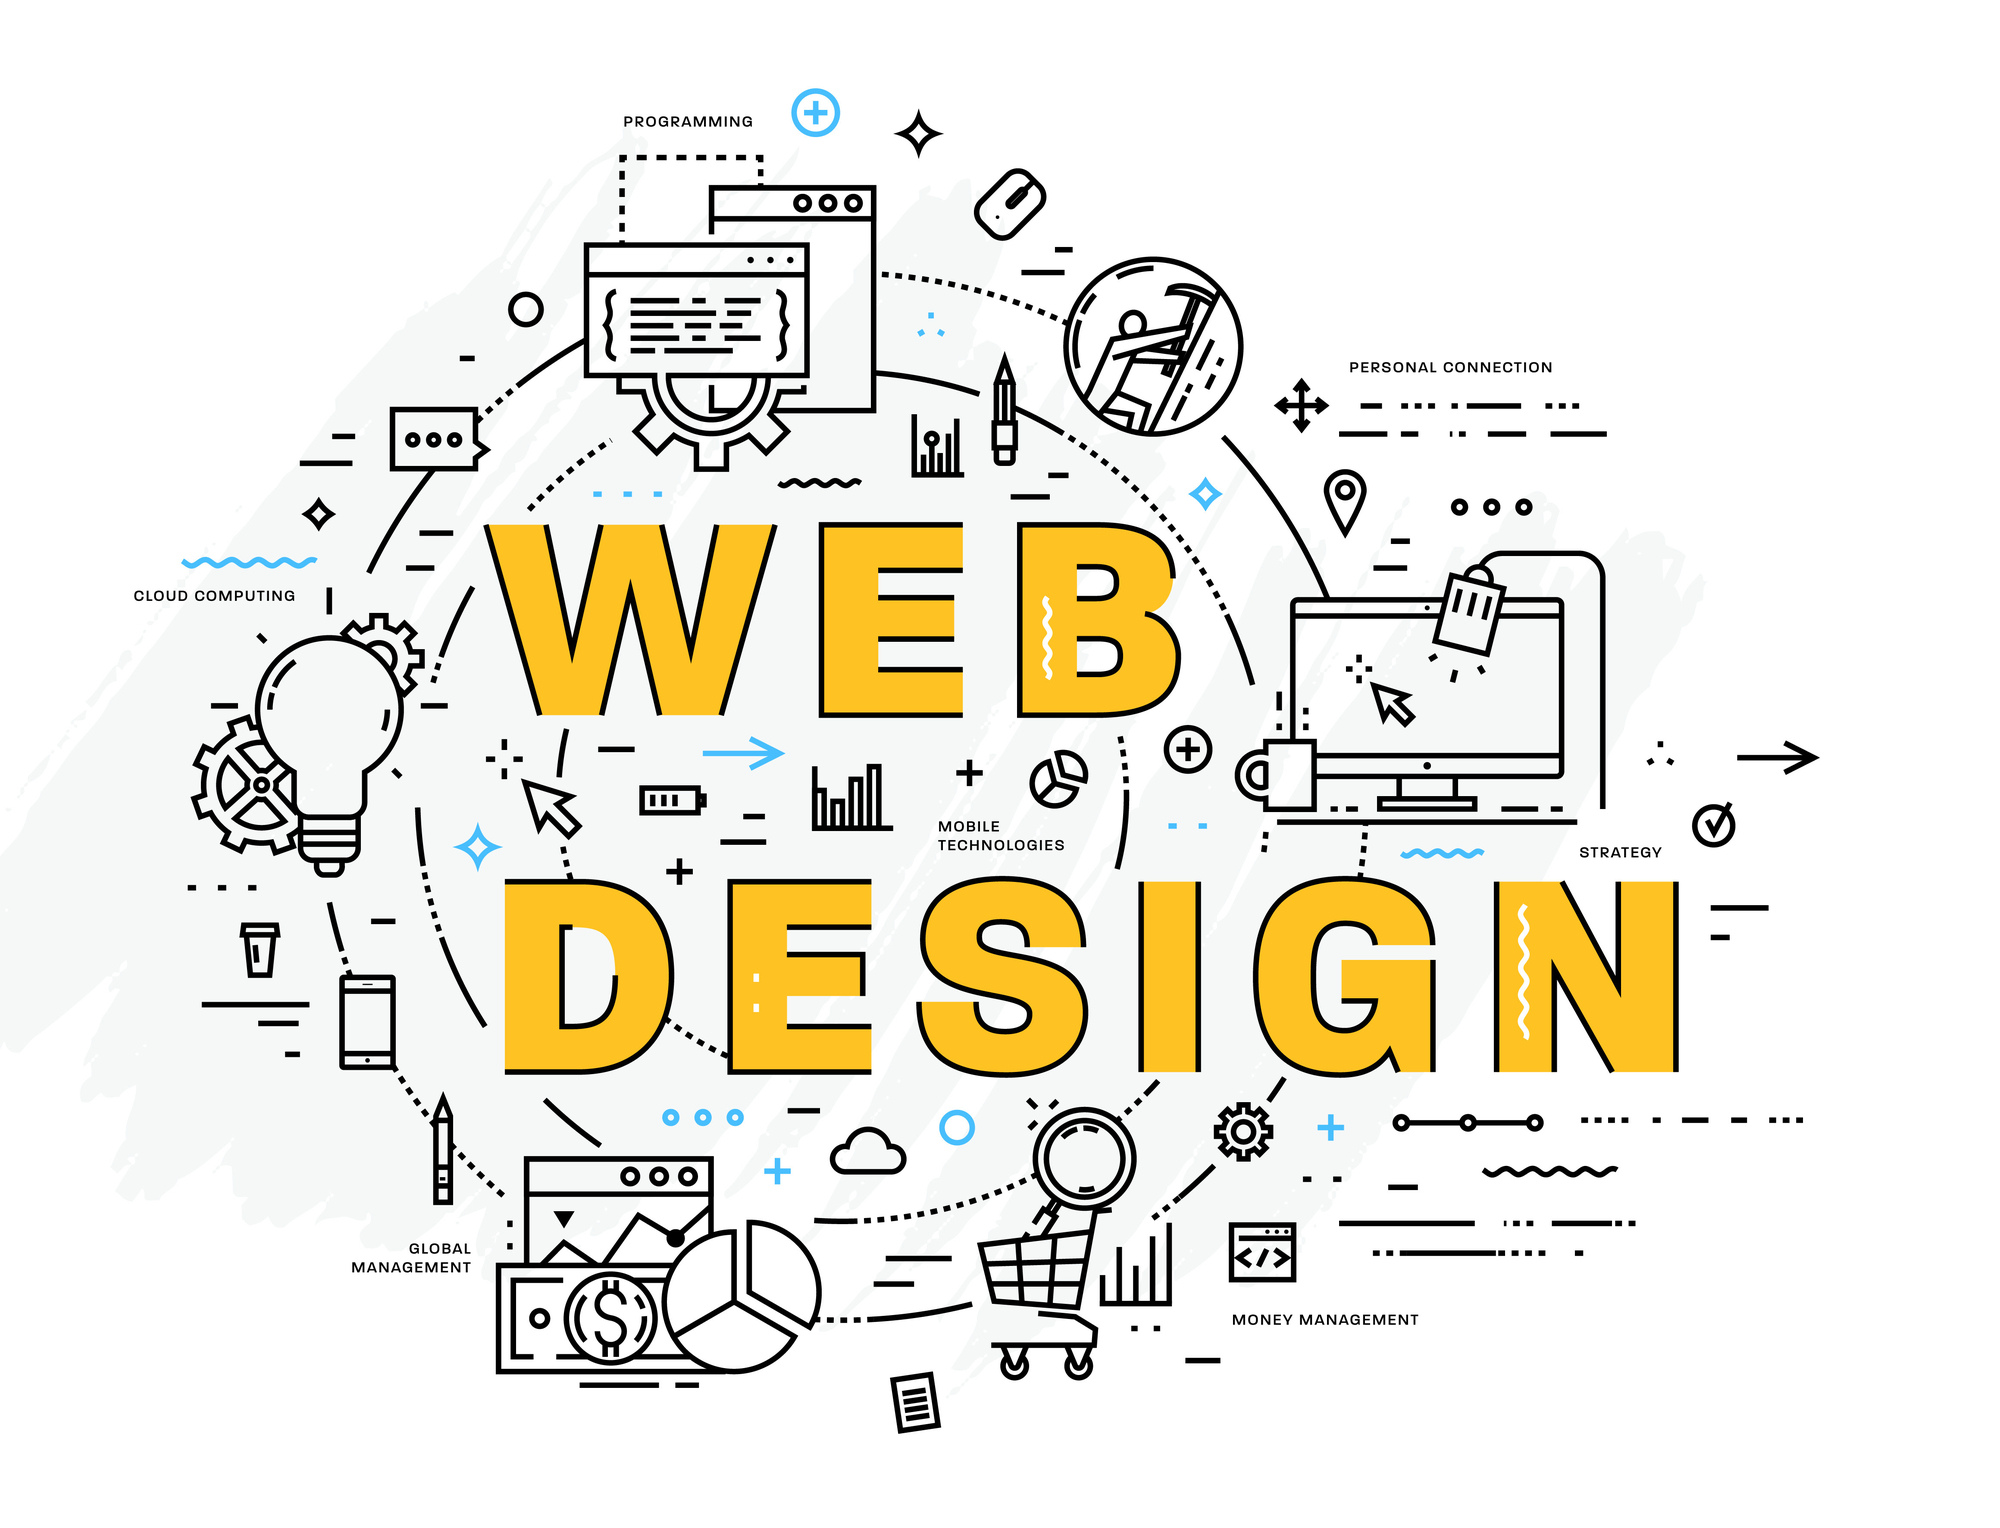 What Are the Different Types of Web Design Services?